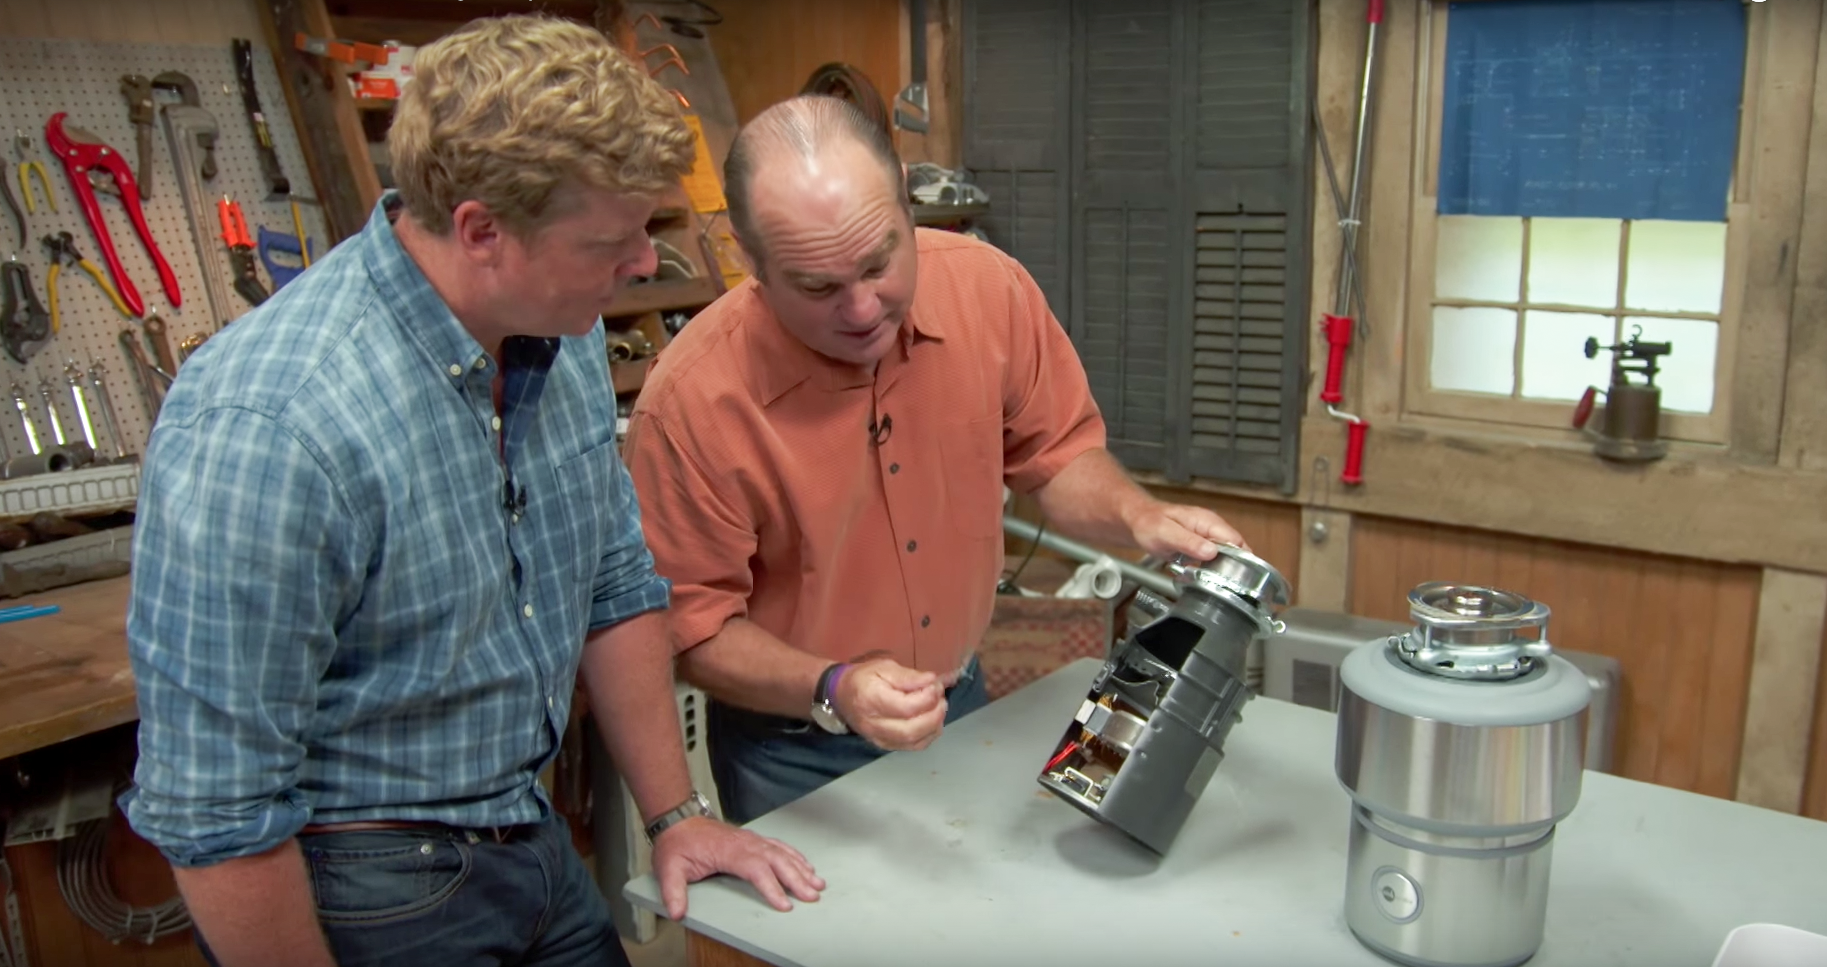 Richard Trethewey and Kevin O'Connor work on a garbage disposal